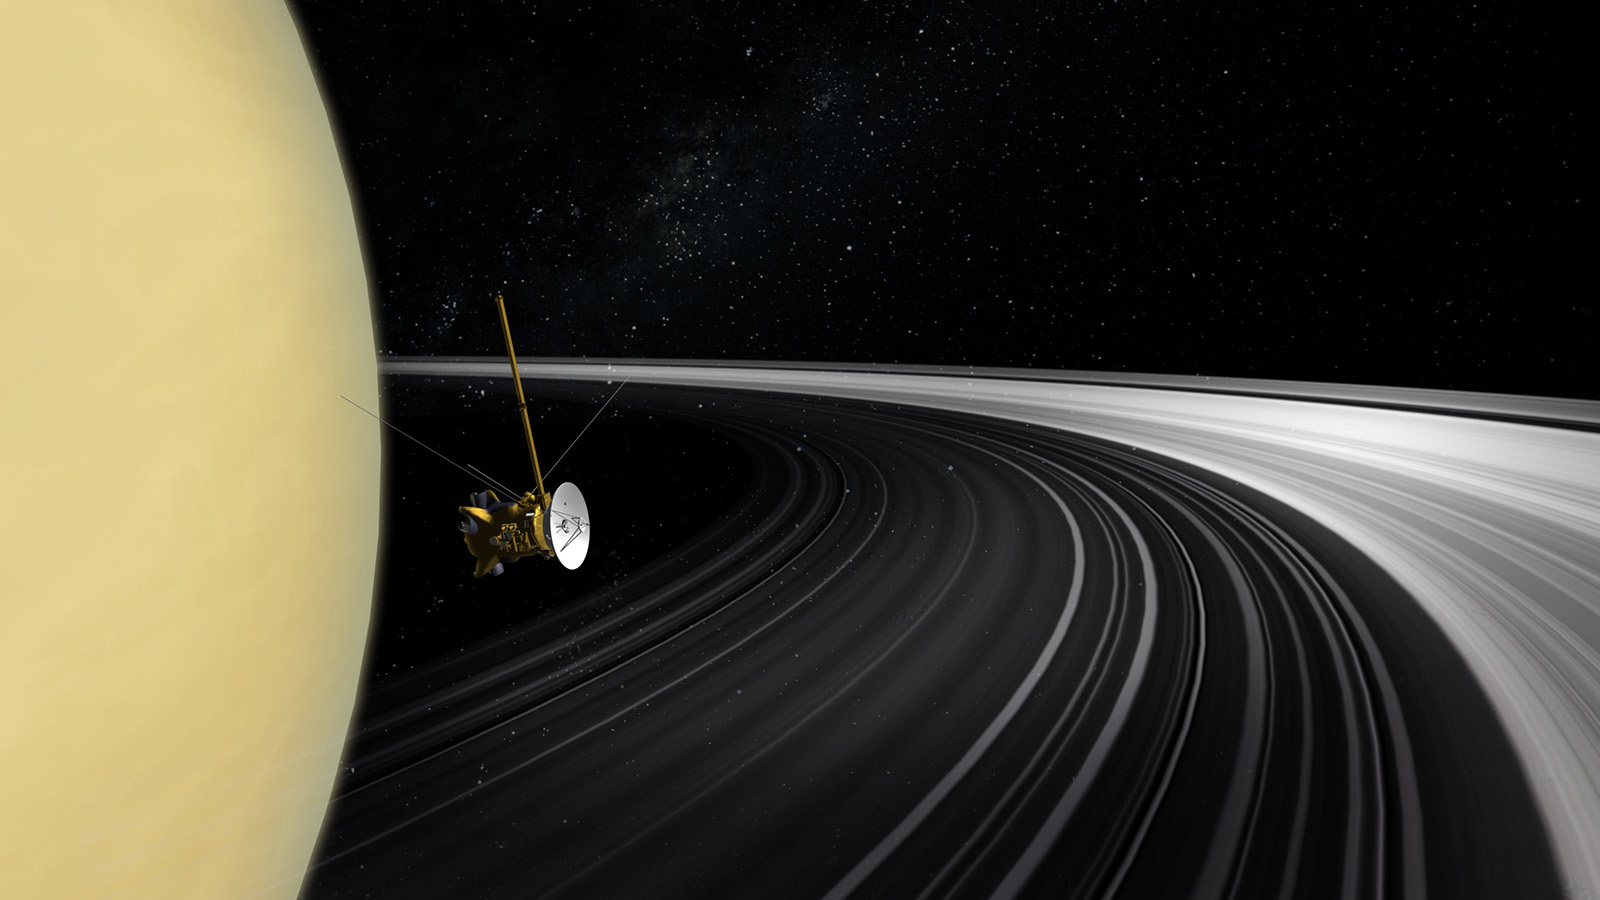 Cassini is prepping to conduct several deep dives between Saturn's rings as its mission winds to a close.